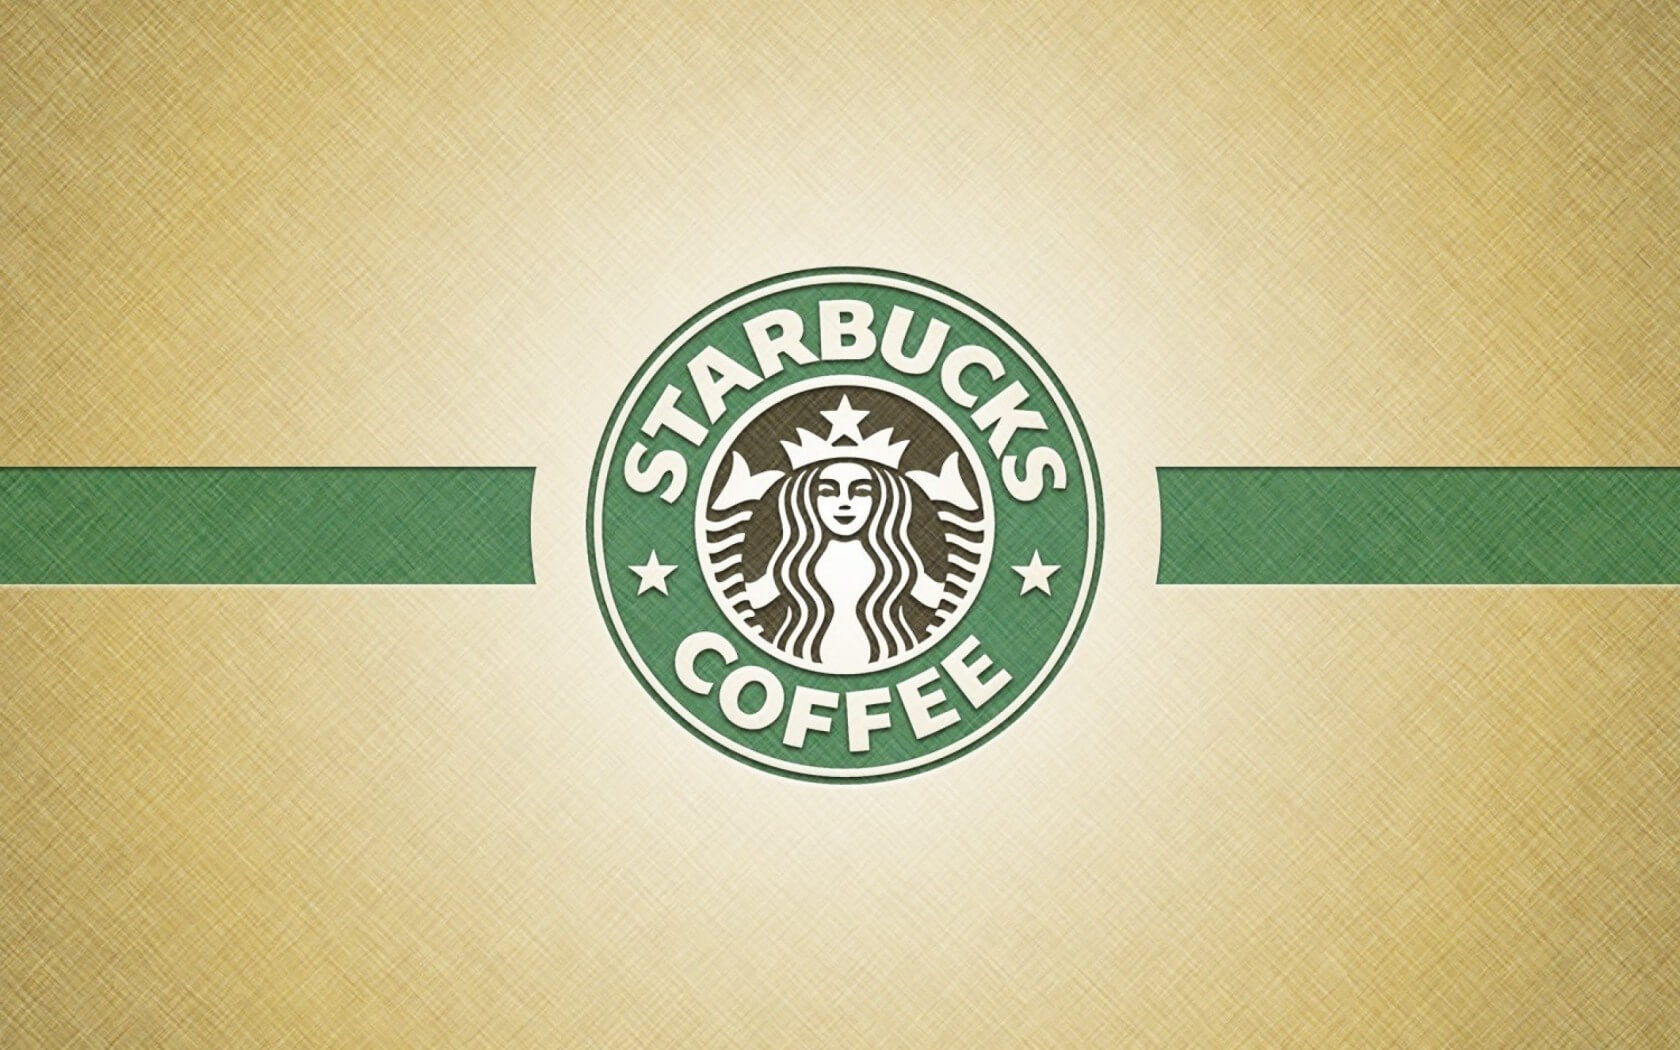 Starbucks Ppt Background - Powerpoint Backgrounds For Free Regarding Starbucks Powerpoint Template